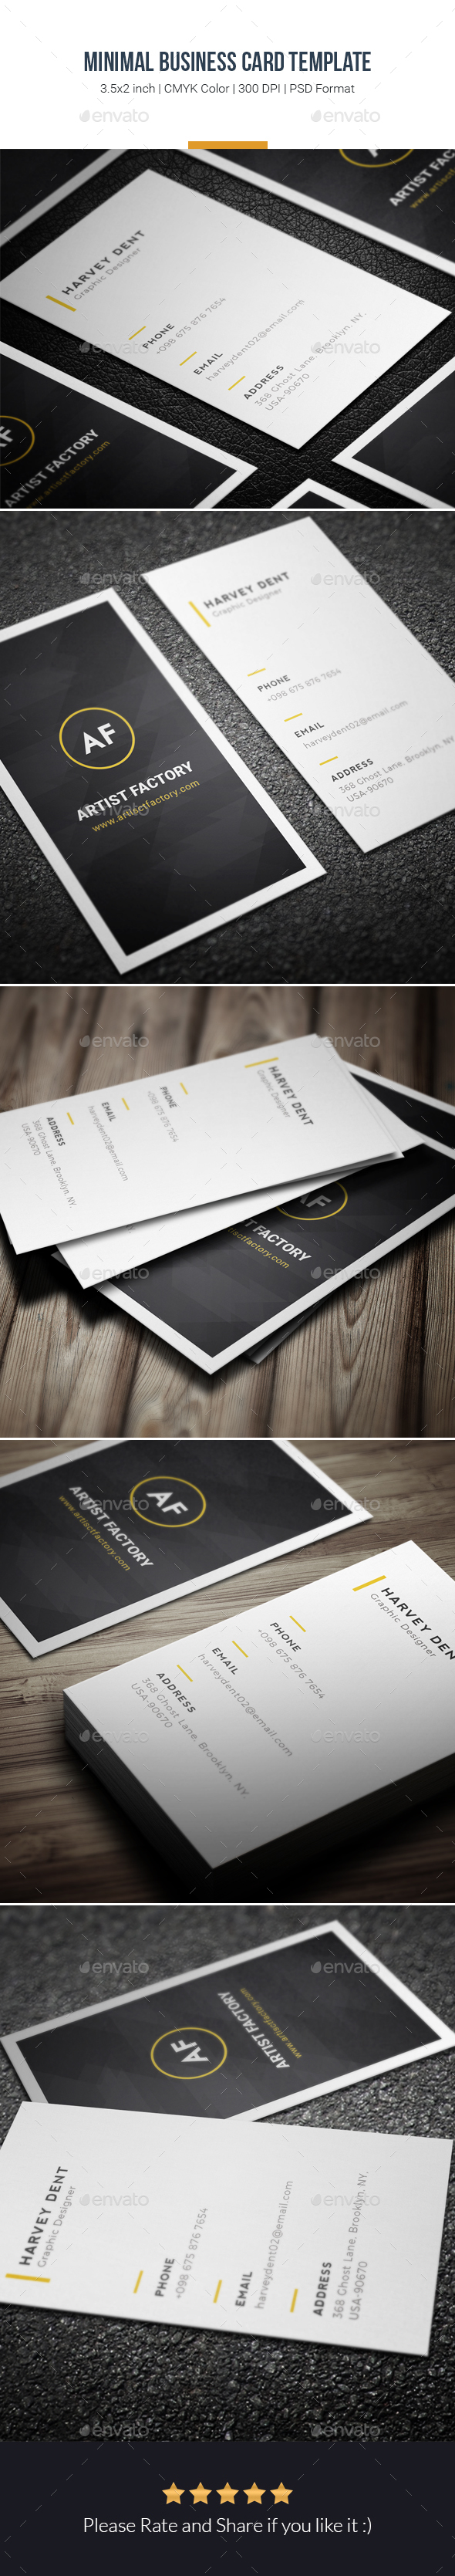 Minimal Business Card Template - Creative Business Cards ...